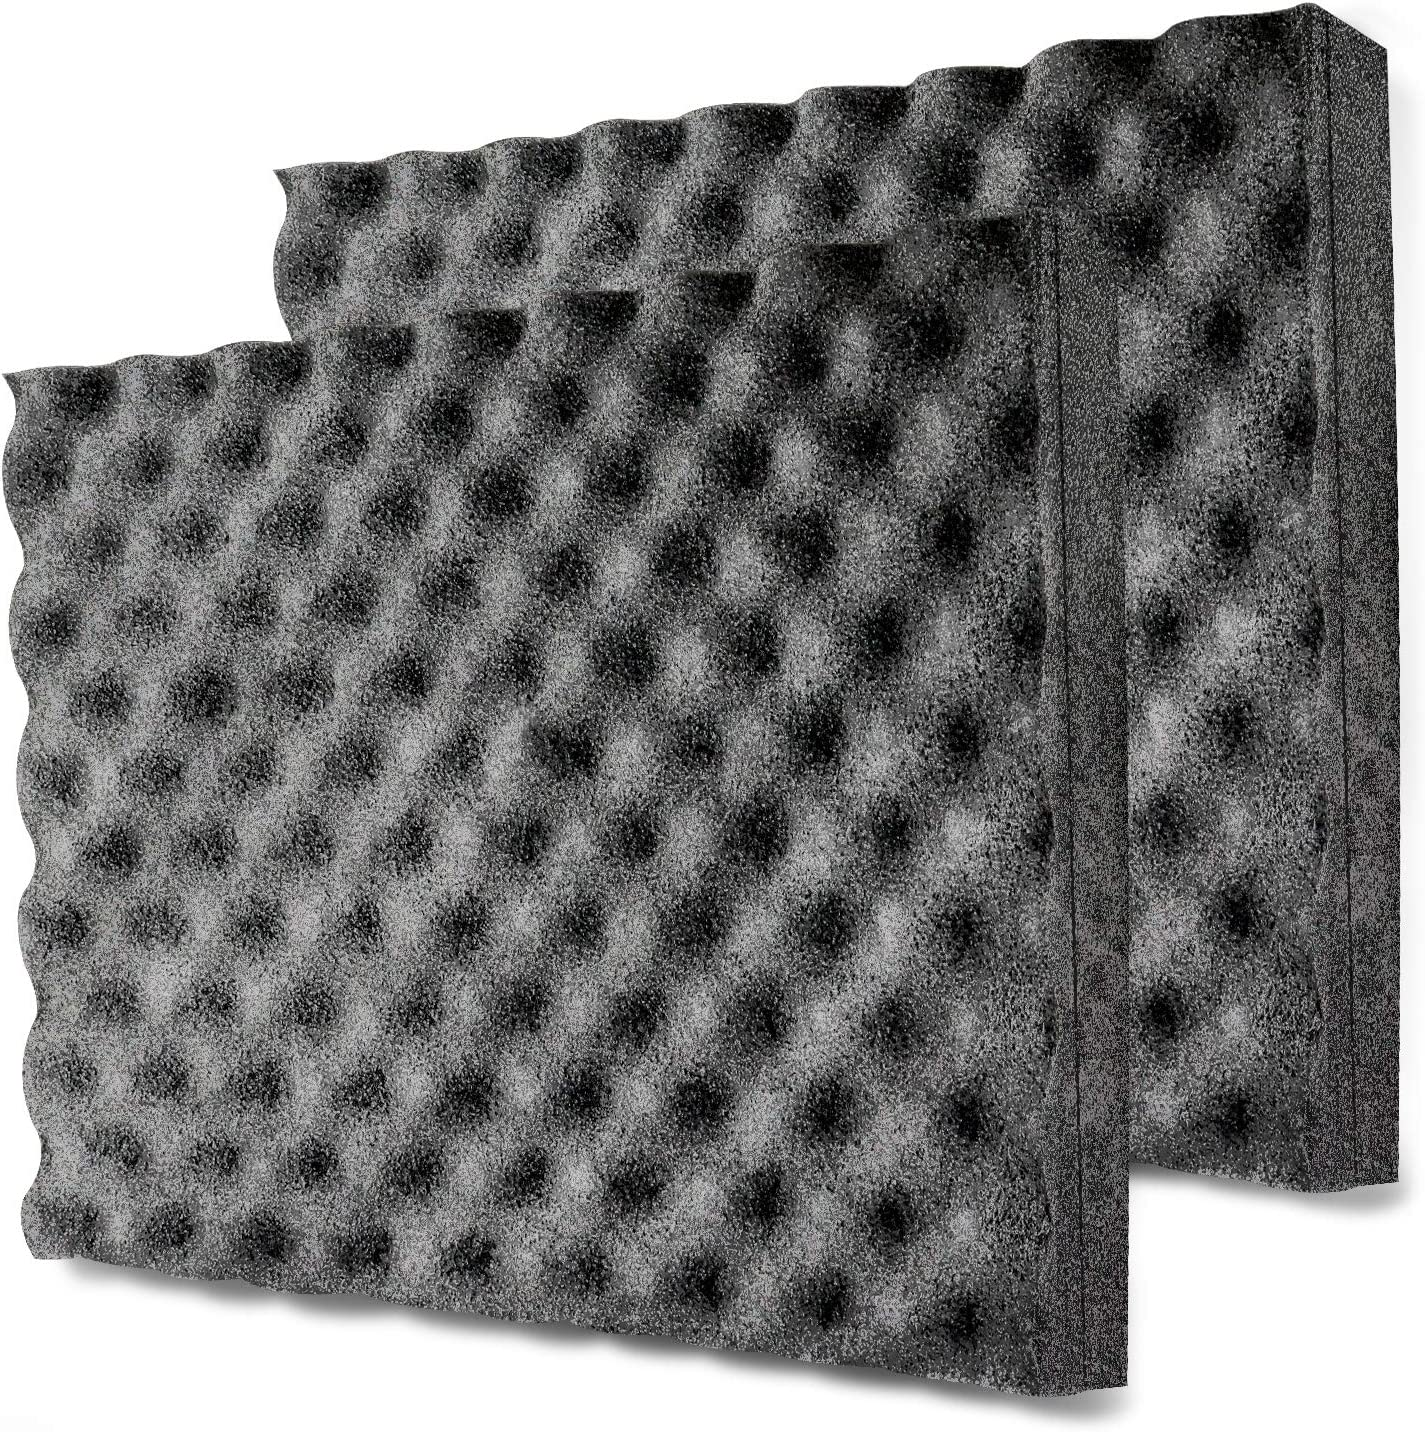 BXI Soundproofing Foam - Closed Cell Foam - Self-adhesive - Great for Noise & Thermal Insulation - 16'' X 12'' X 1.8''(2 PACK)